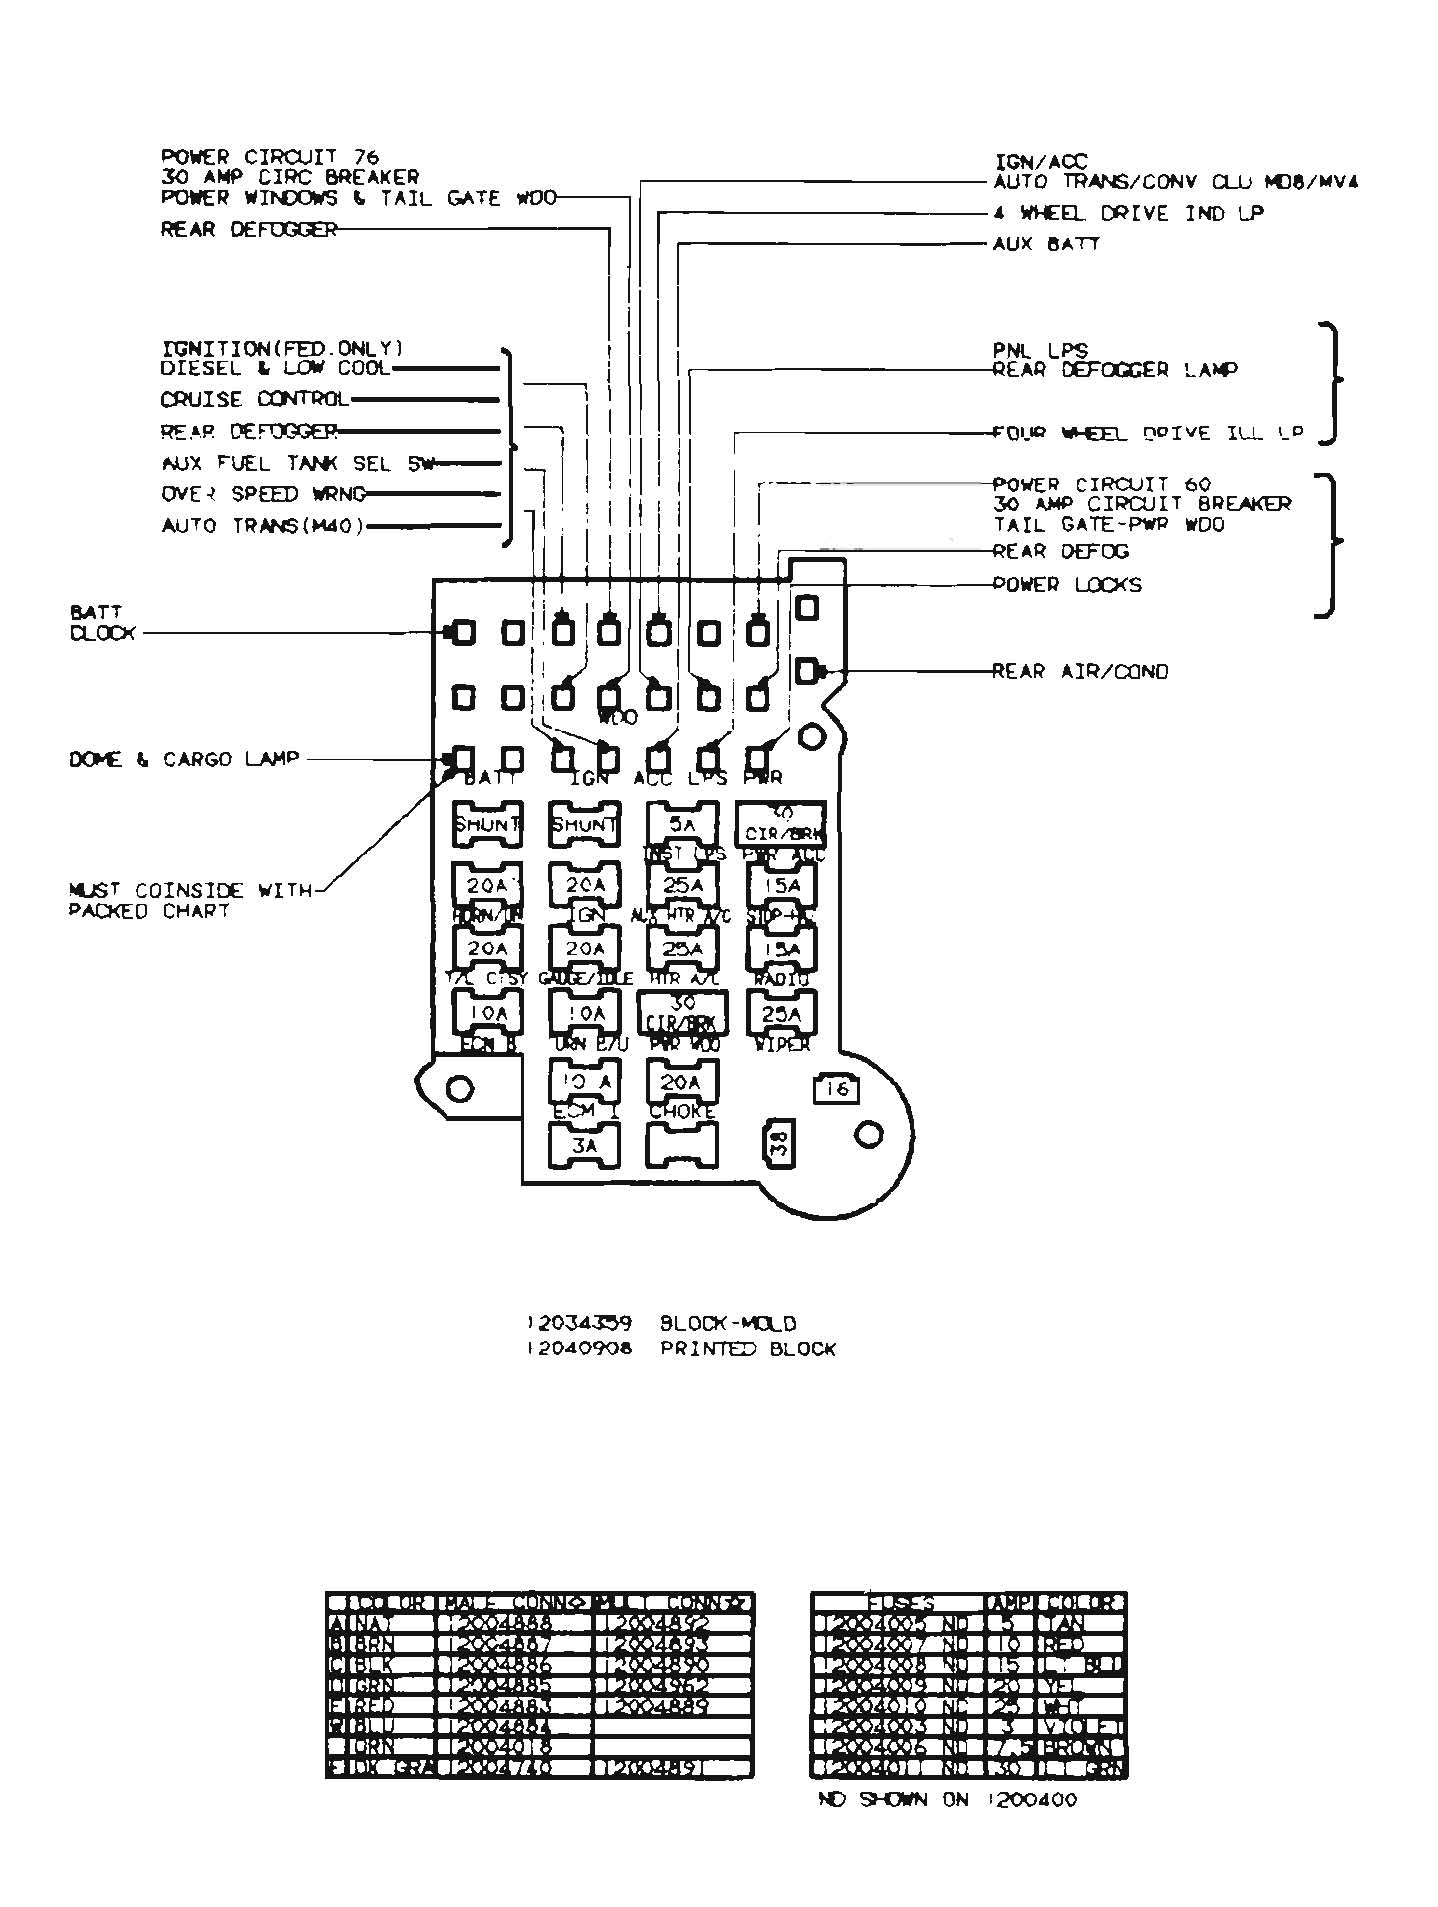 1984 c10 fuse box diagram 1984 image wiring diagram 87 chevy truck fuse box 87 wiring diagrams online on 1984 c10 fuse box diagram